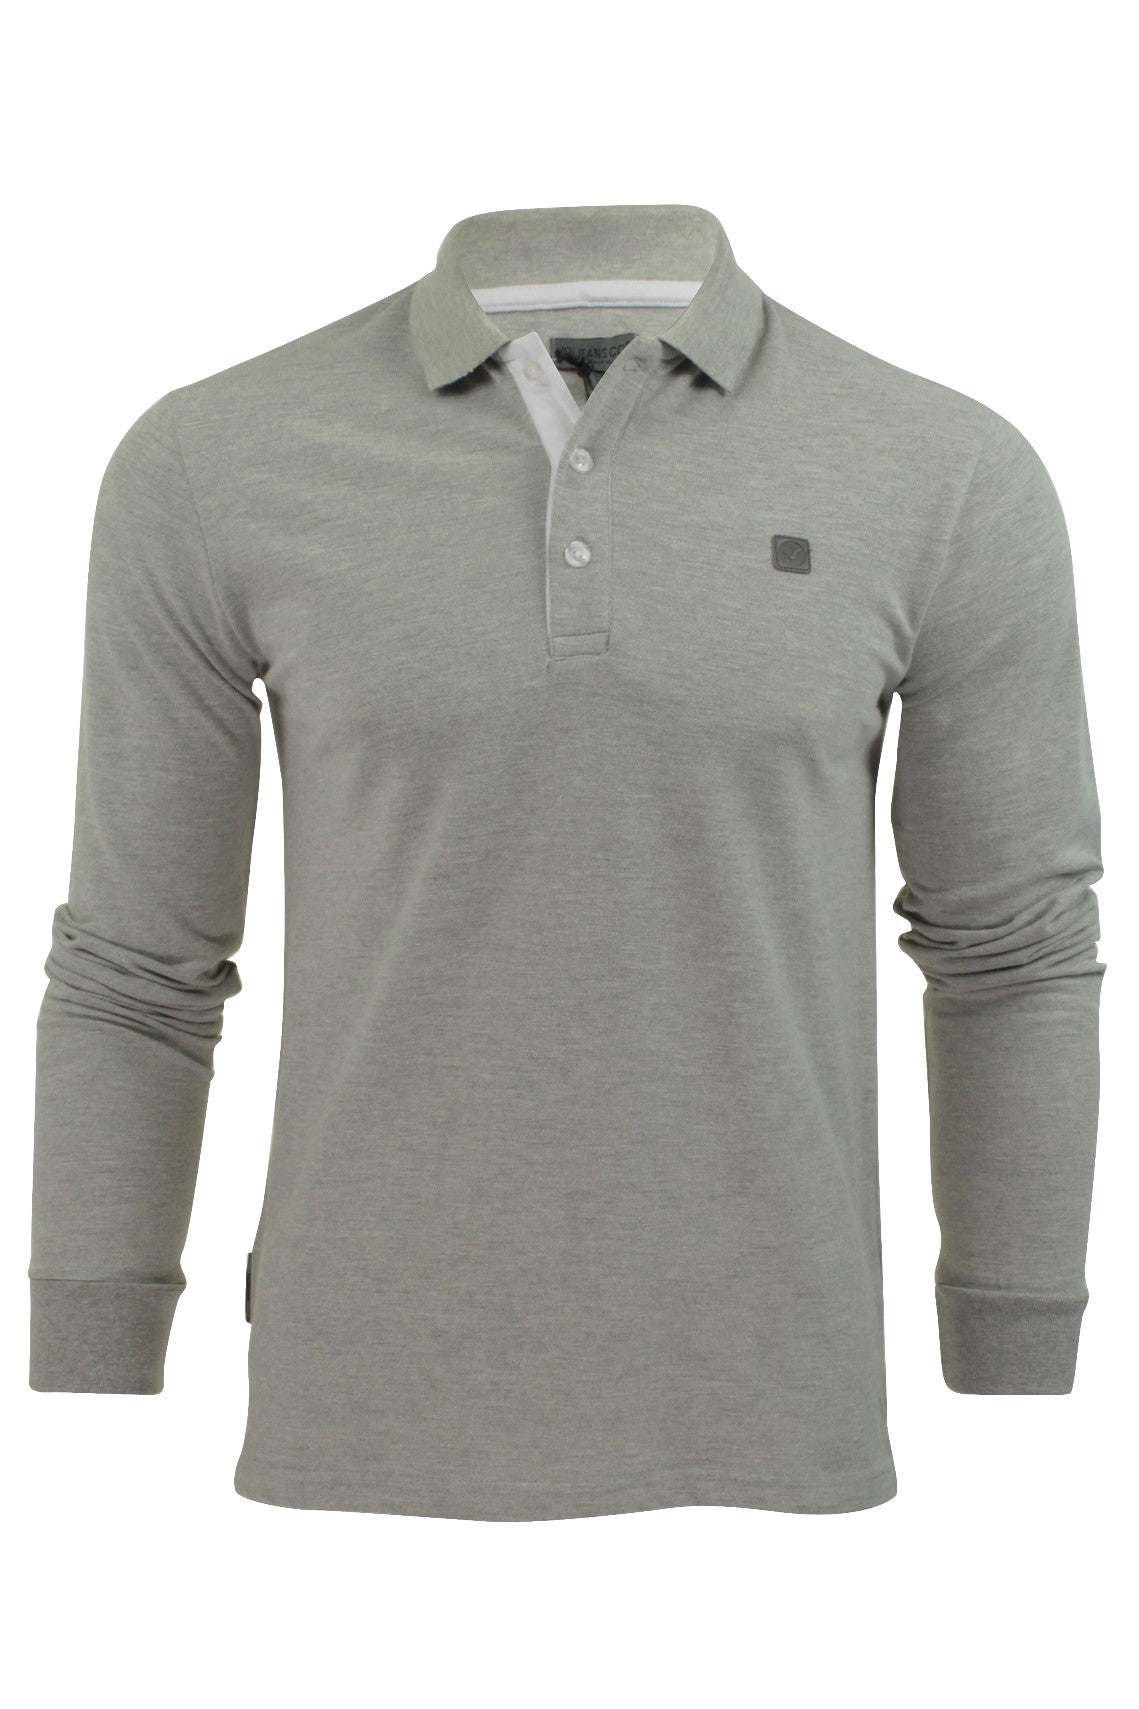 Mens Polo Shirt by Voi Jeans-2